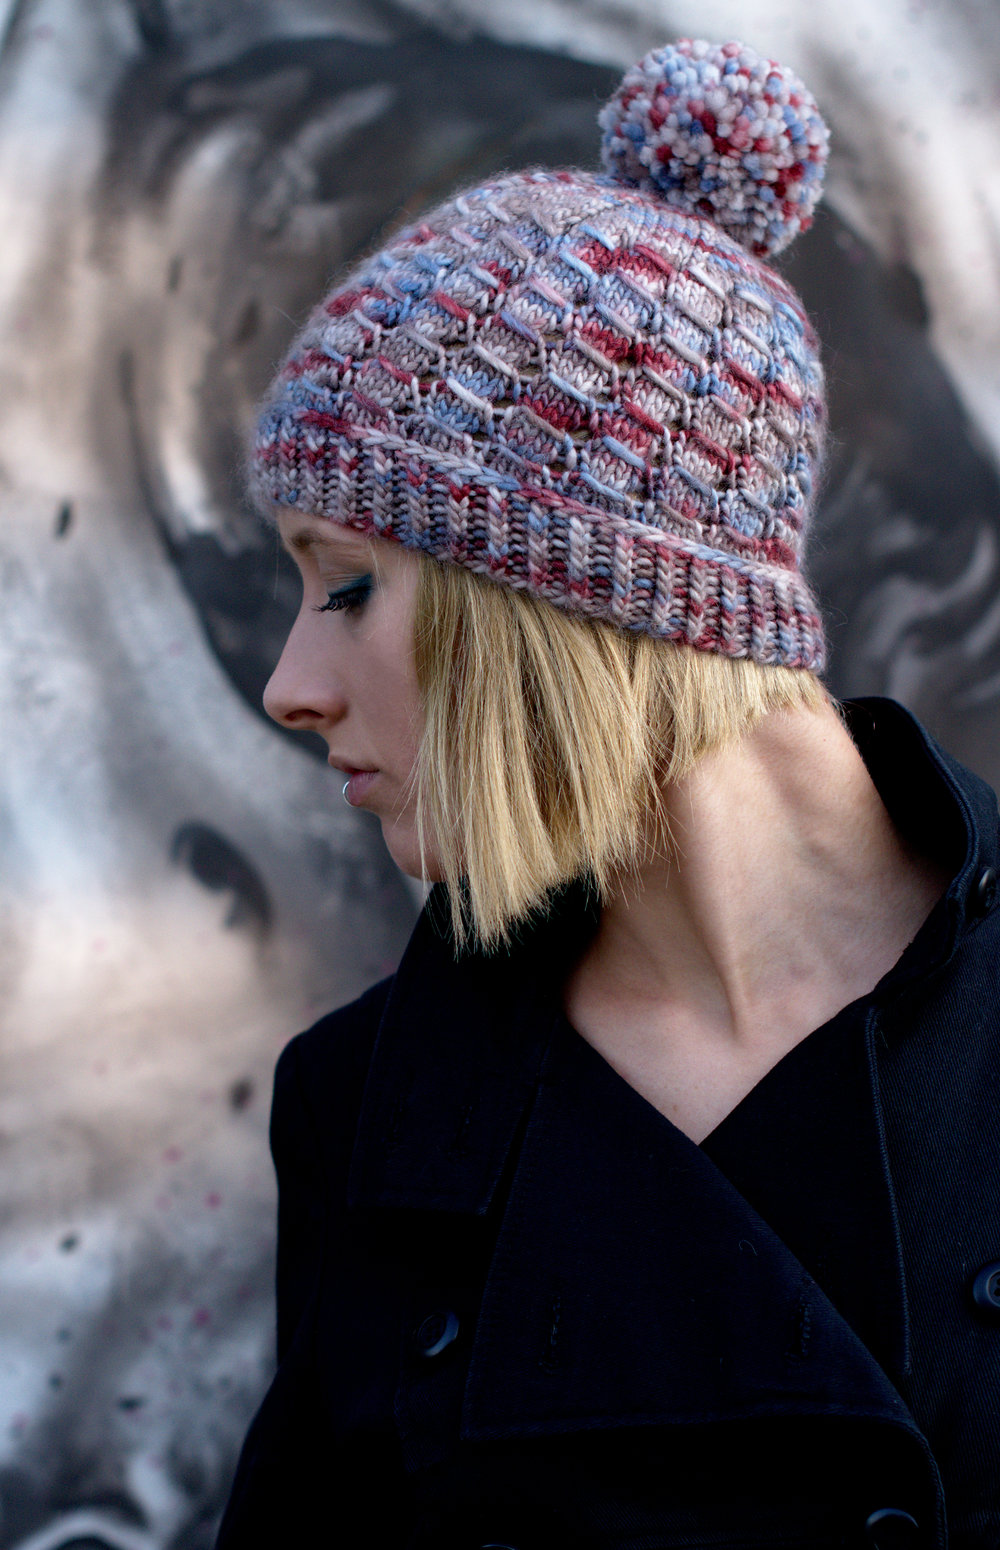 Laccio beanie hand knitting pattern for aran weight yarn